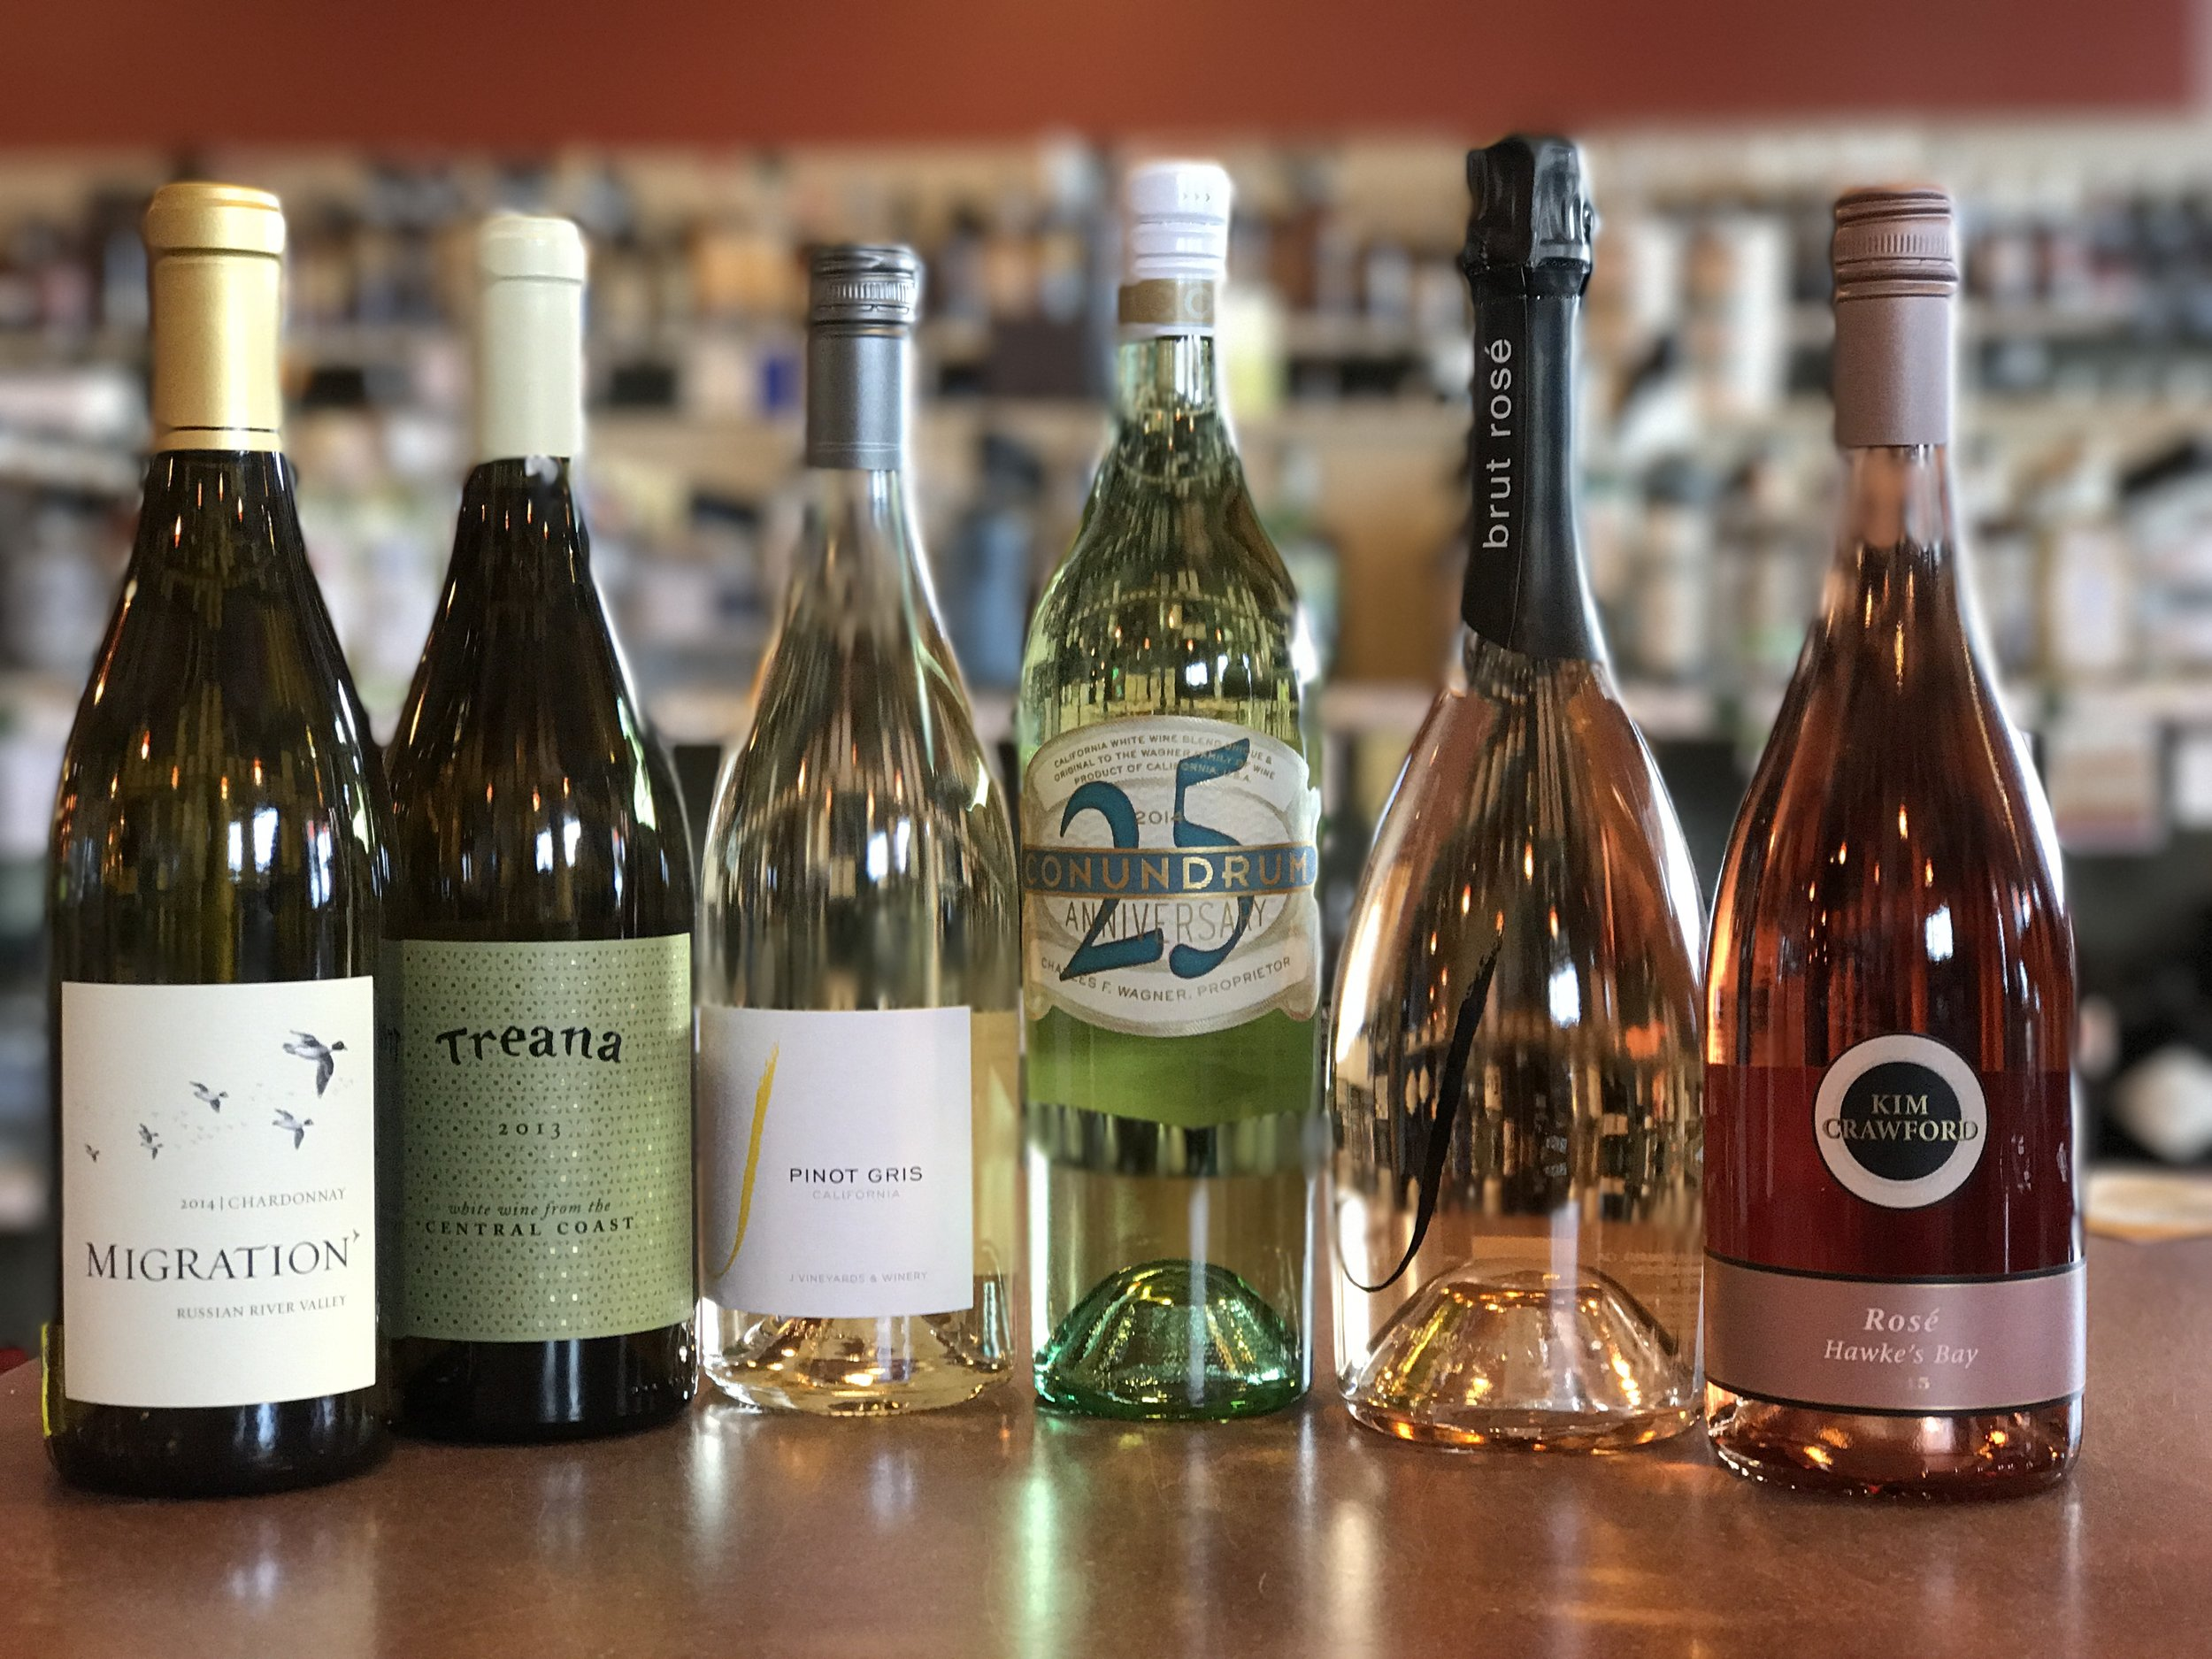 Spring Wine Recommendations for Easter